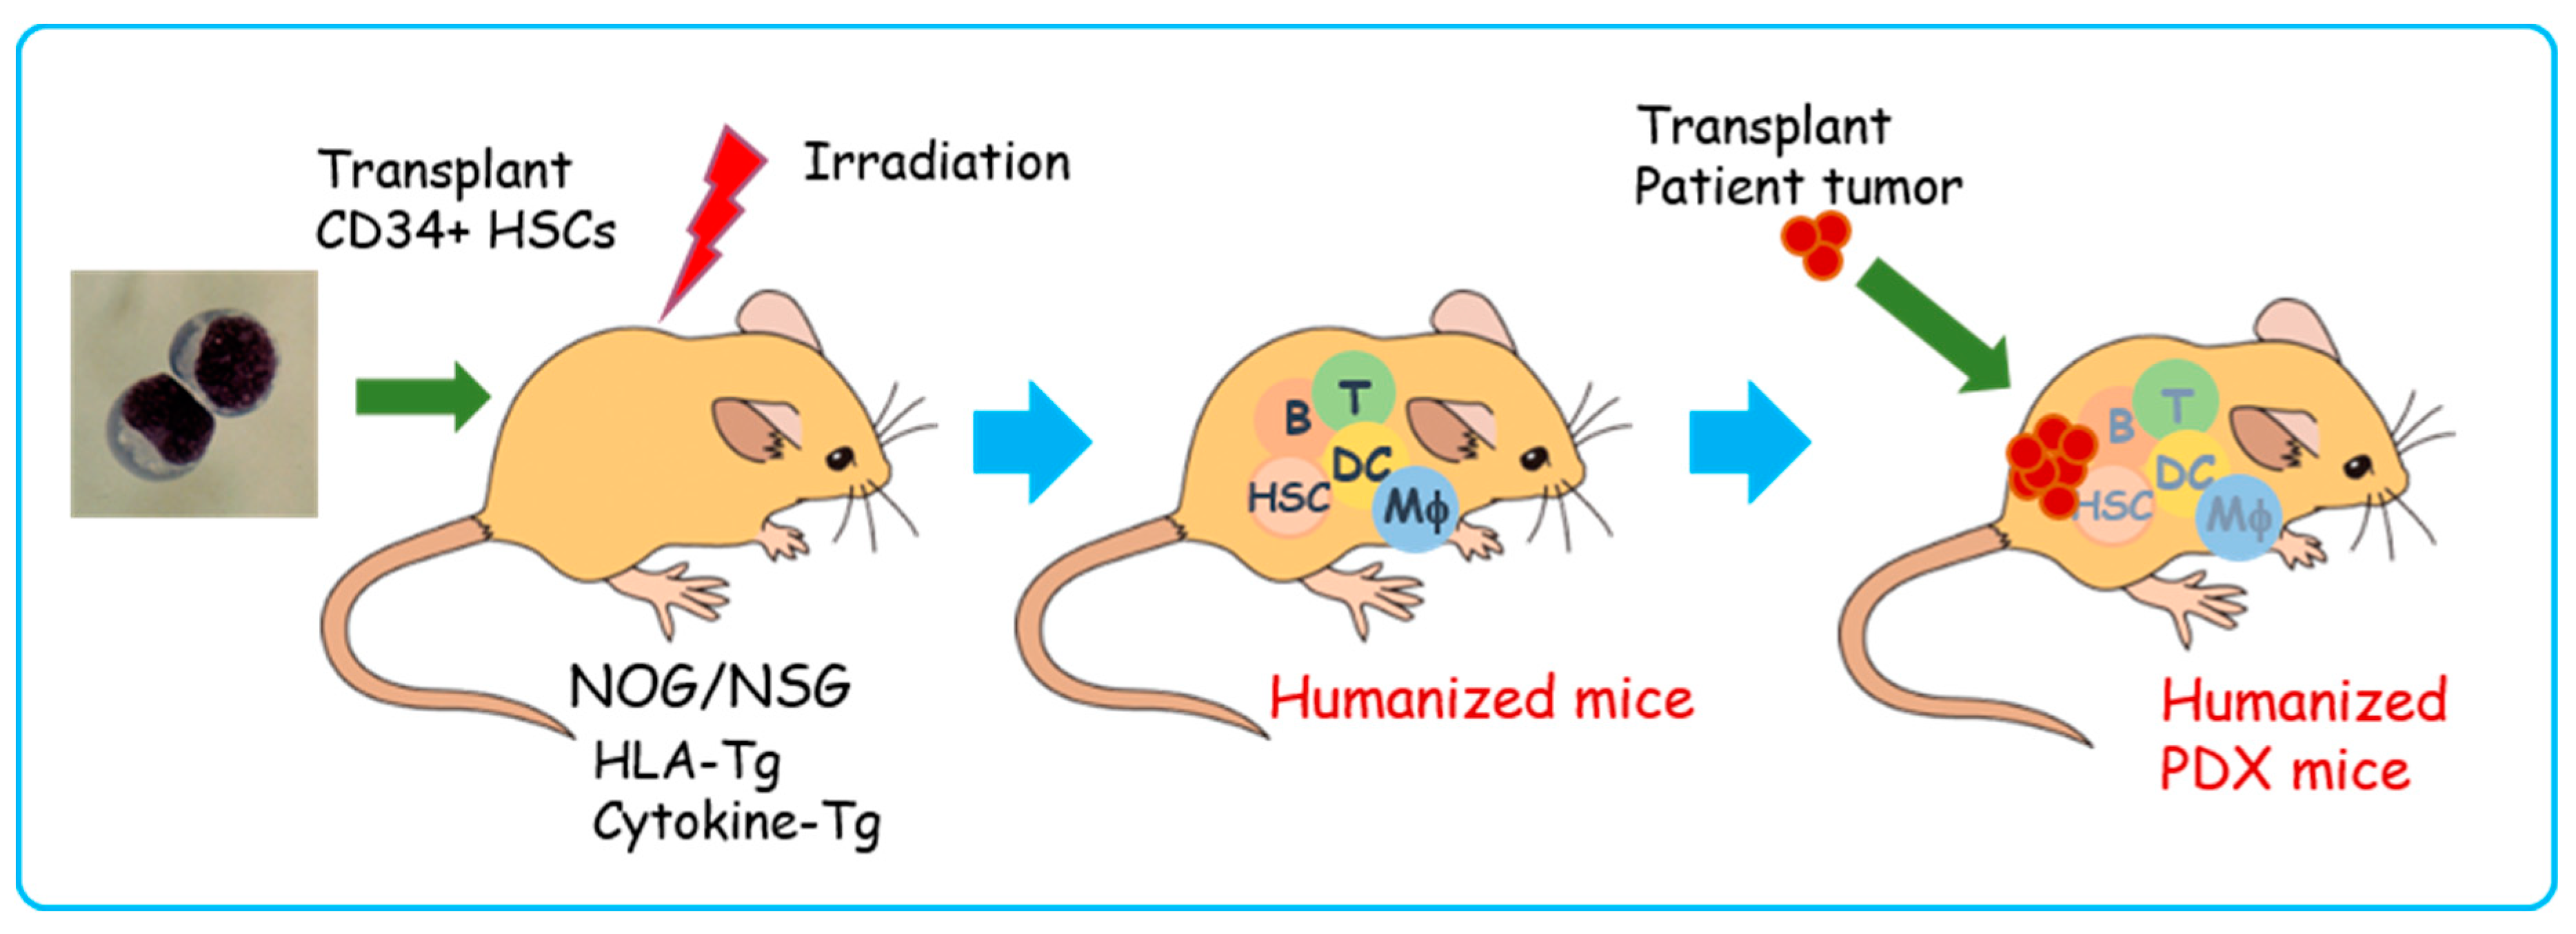 Cells Free Full Text Application Of Highly Immunocompromised Mice For The Establishment Of Patient Derived Xenograft Pdx Models Html